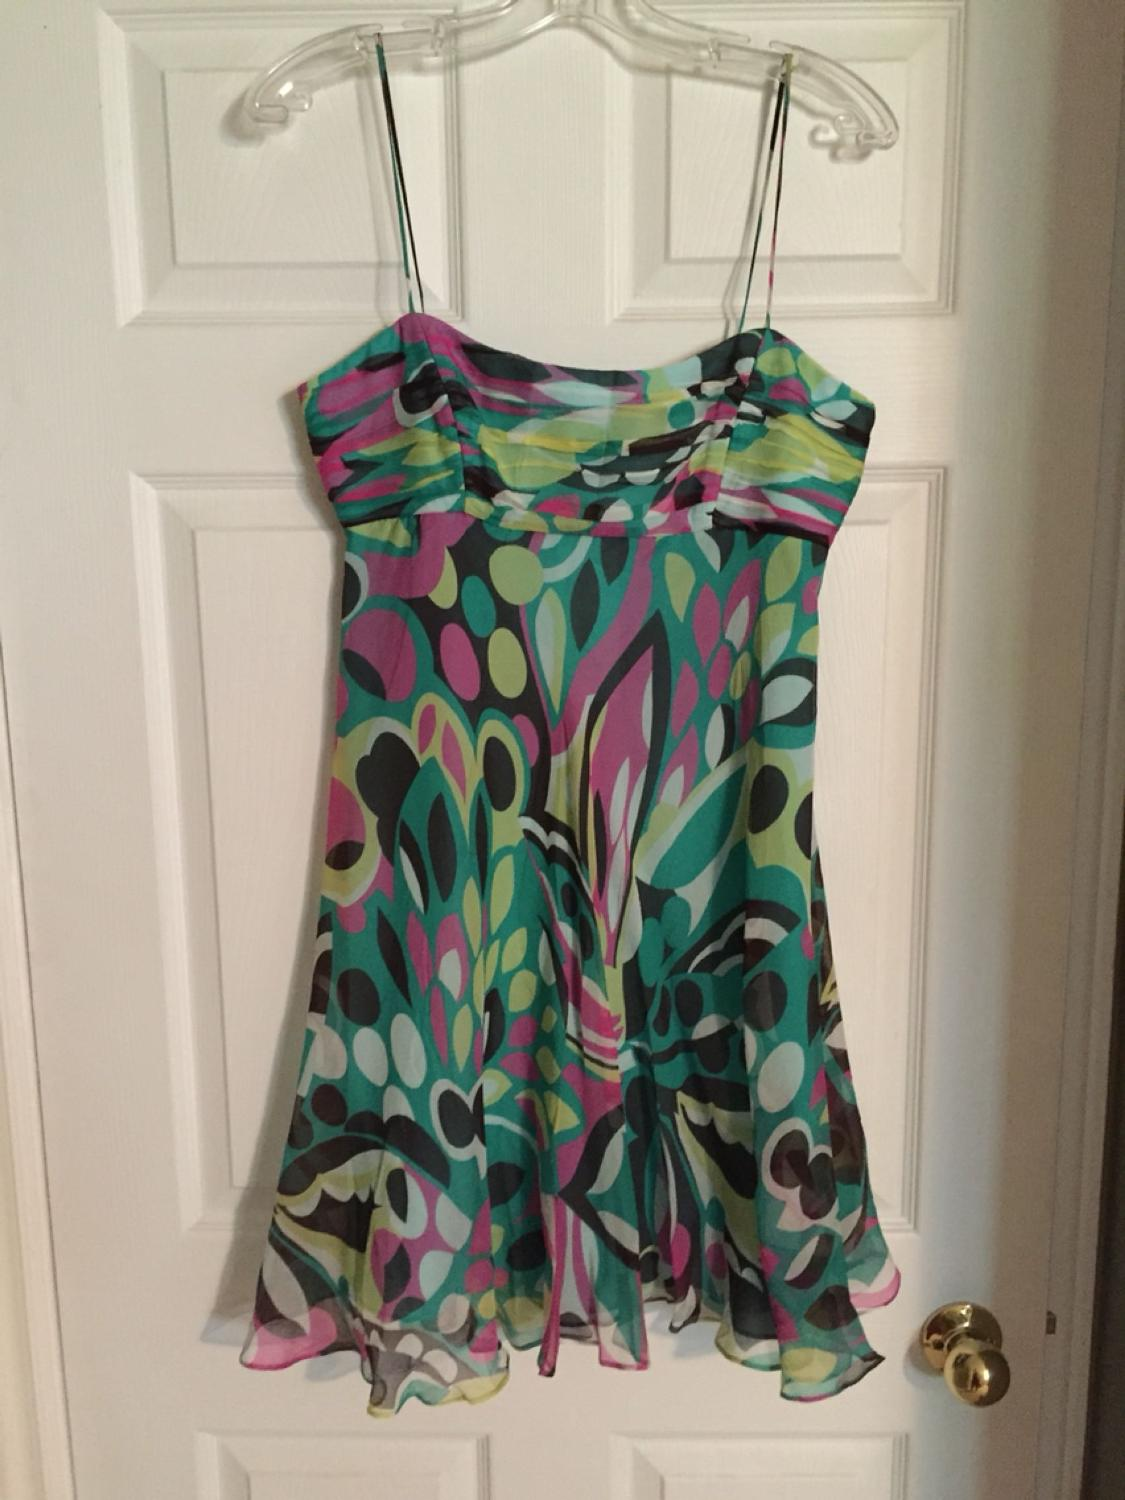 017f529950 Best Bnwt Milly New York Dress - Size 6 for sale in The Beaches ...